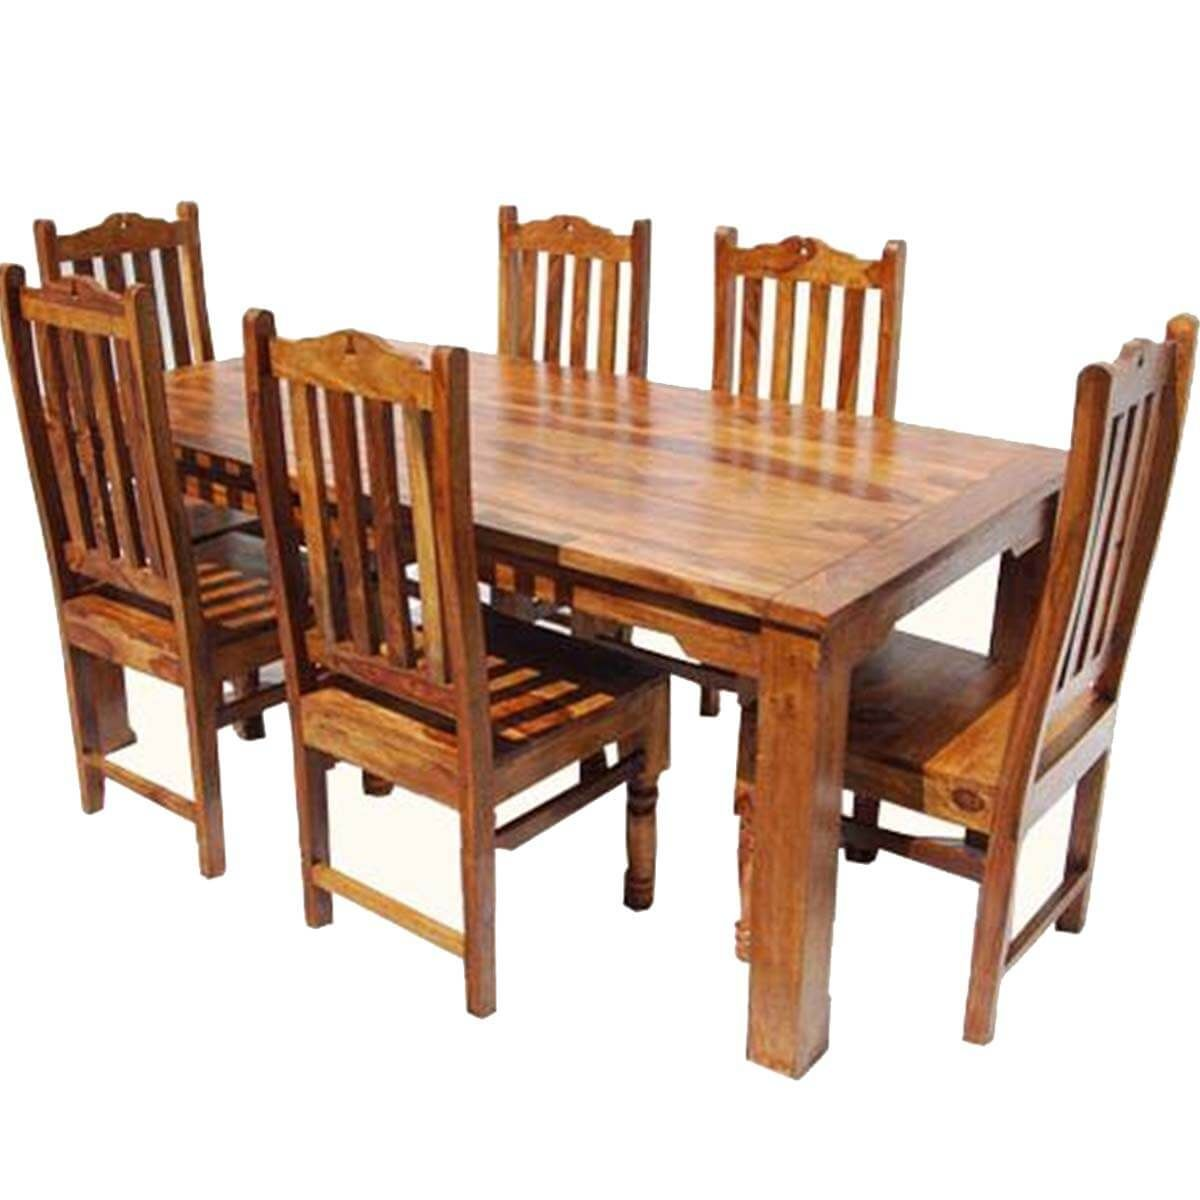 Rustic Solid Wood Dallas Dining Table With Chairs Set Dining